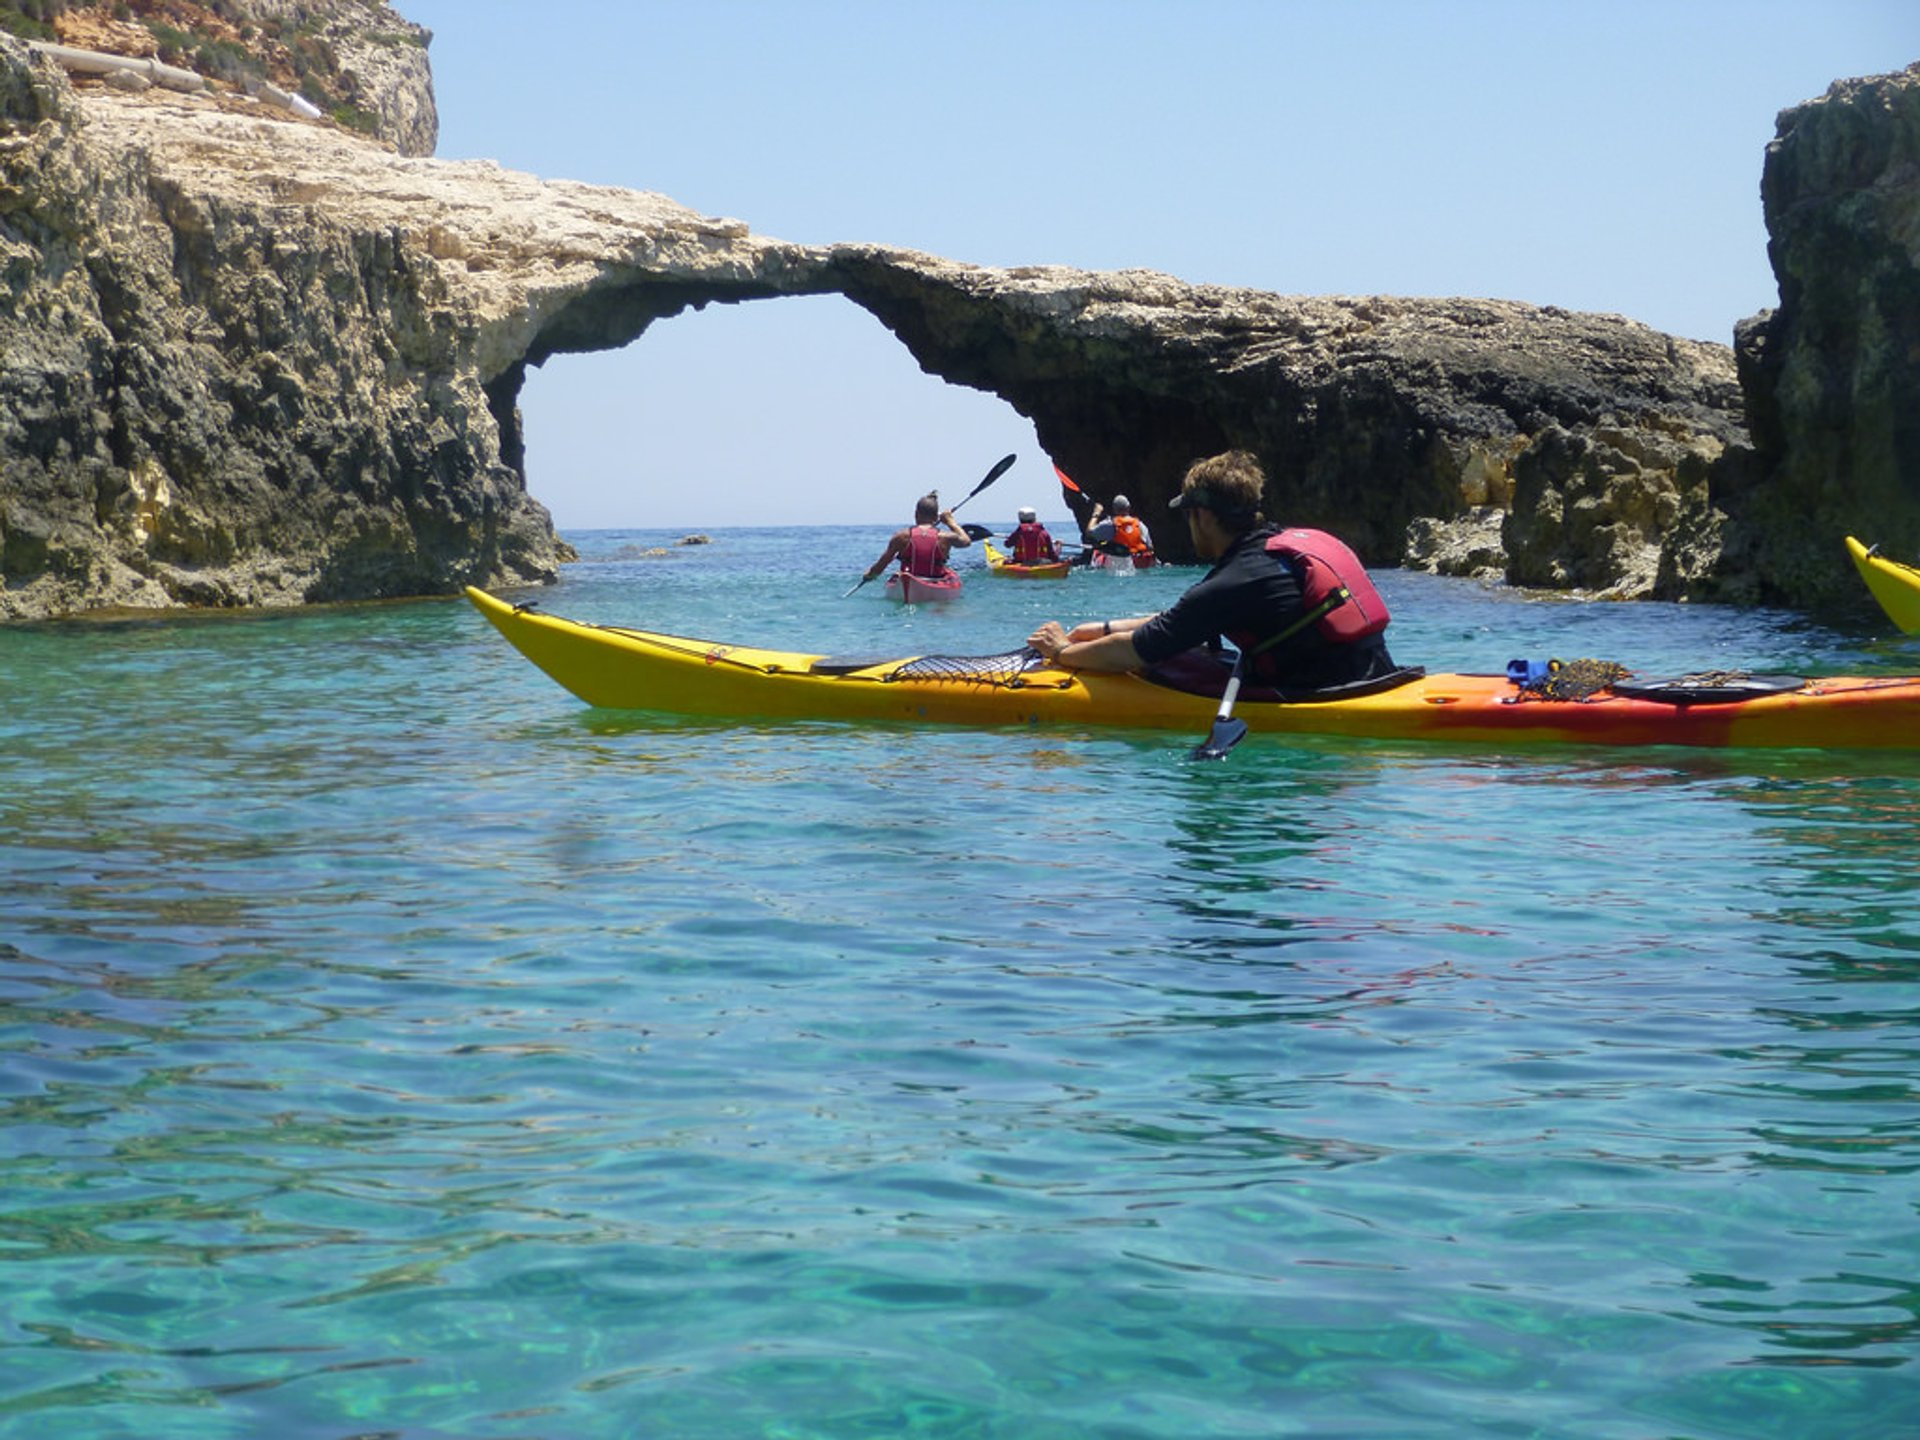 Kayaking in Malta 2020 - Best Time